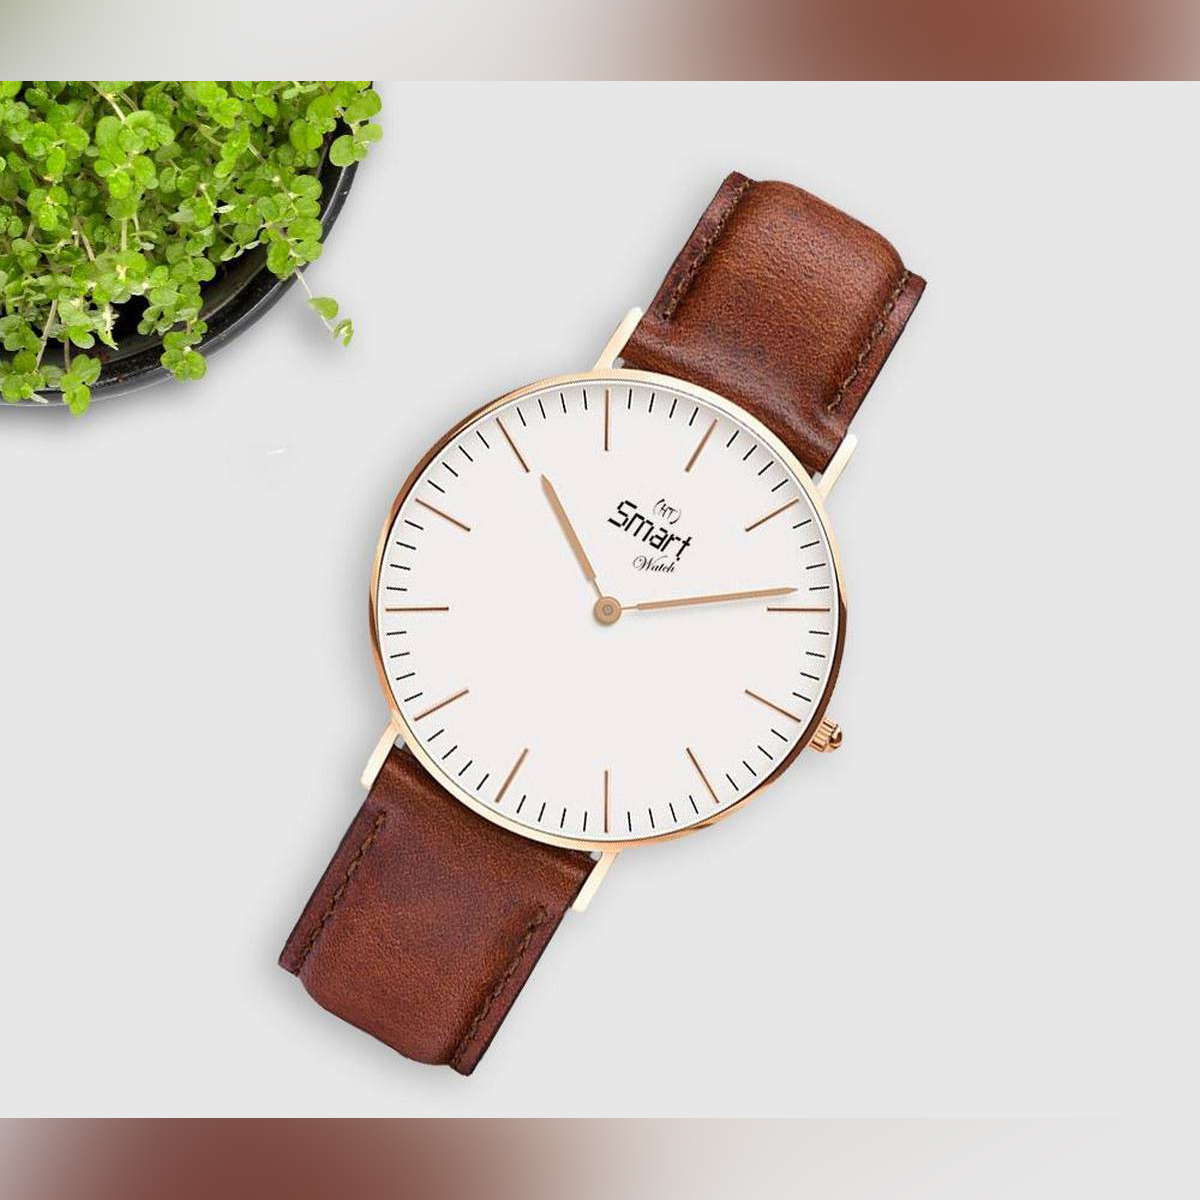 Hot Sale  Top Luxury Men Watches Fashion Round Stainless Steel Case Leather Strap Watch for Gift Party Casual Wear Business watch Male Clock